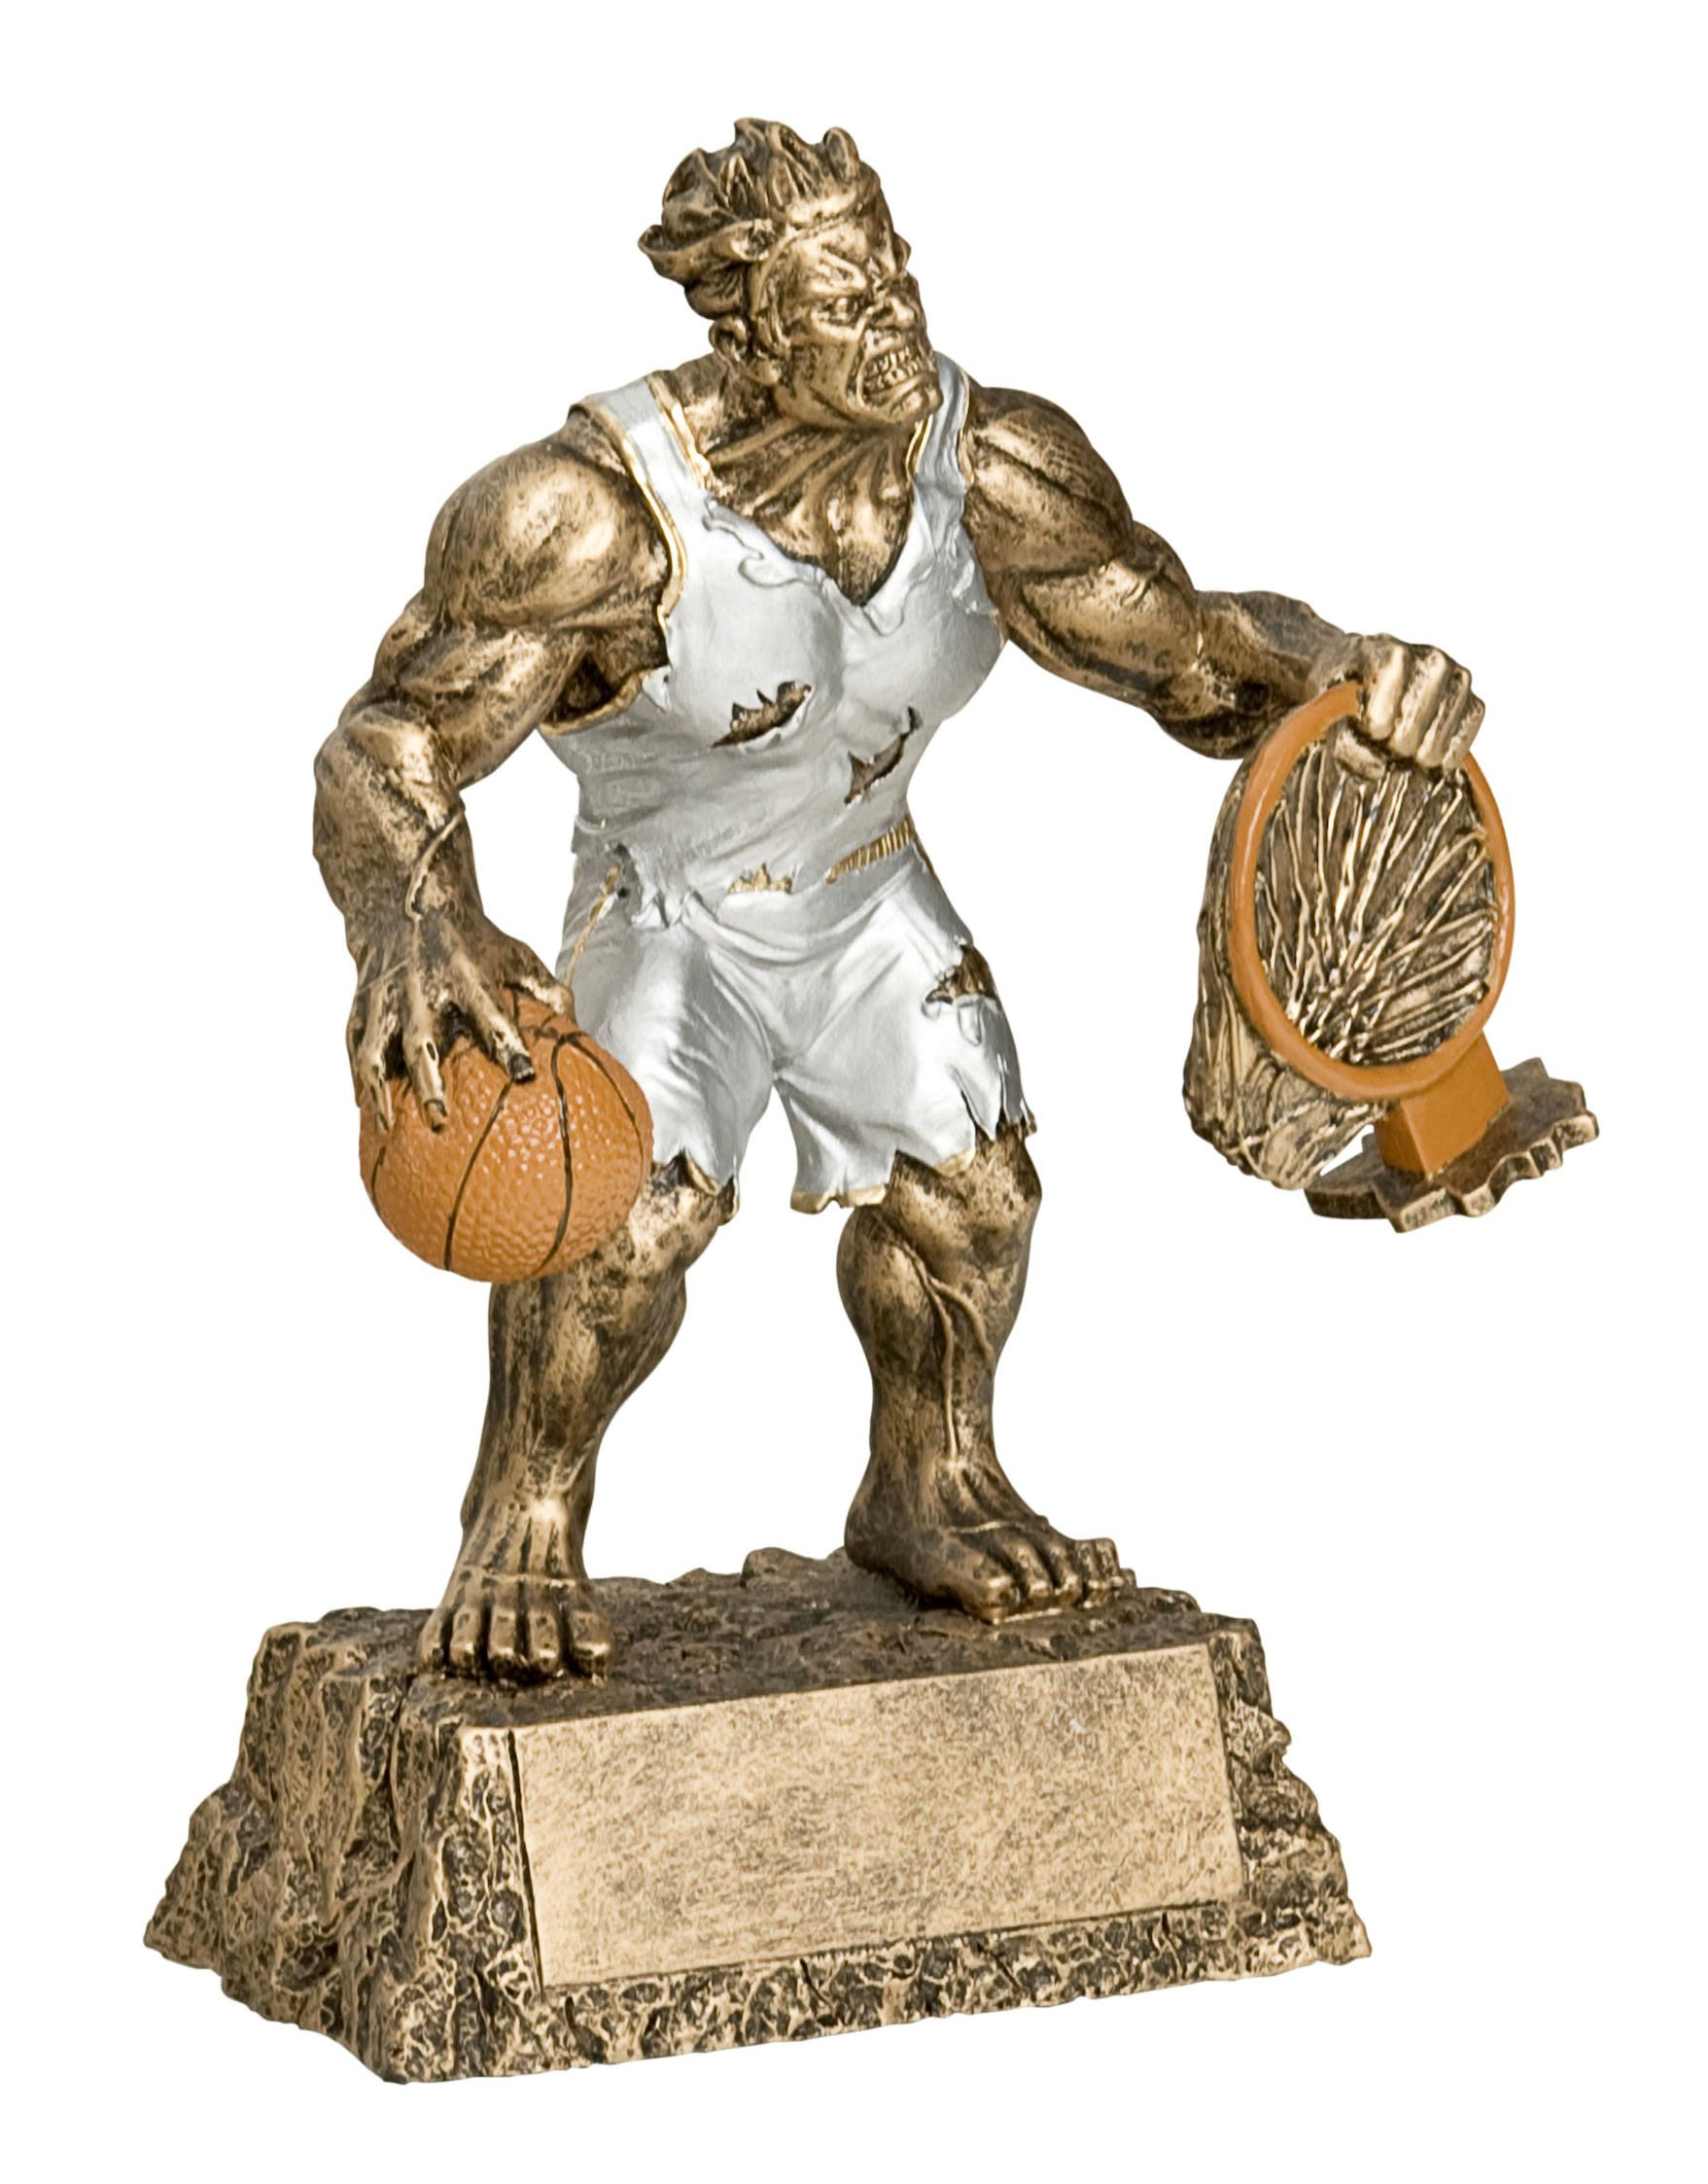 Monster Basketball Trophy - Engraved Plates by Request - Perfect Basketball Award Trophy - Hand Painted Design - Made by Heavy Resin Casting - for Recognition - Decade Awards